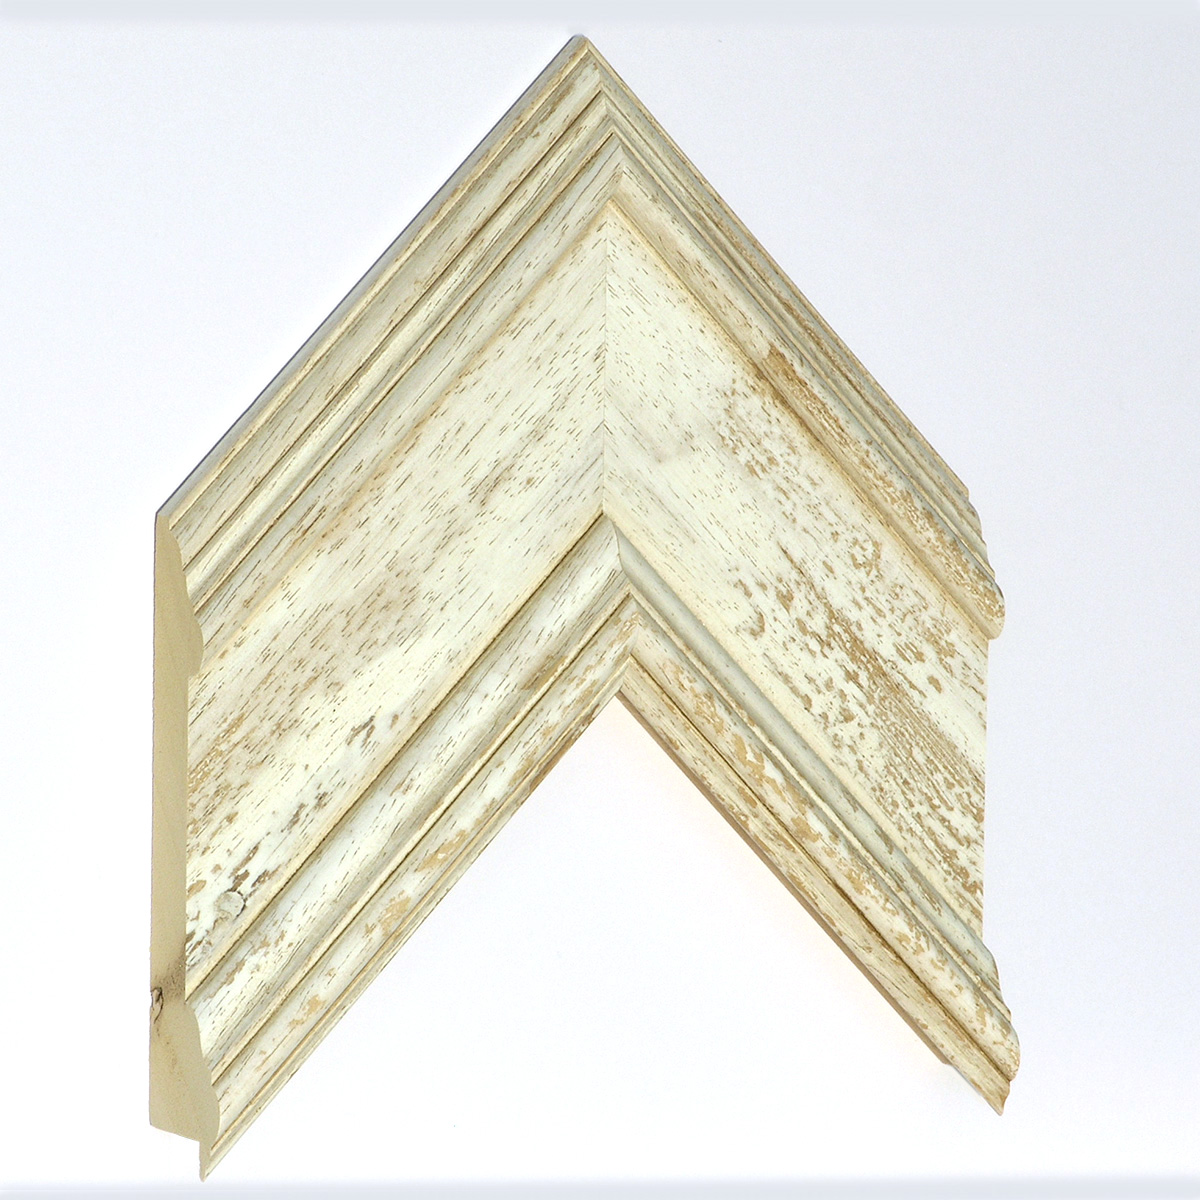 Moulding ayous - Width 105mm Height 34 - whitish